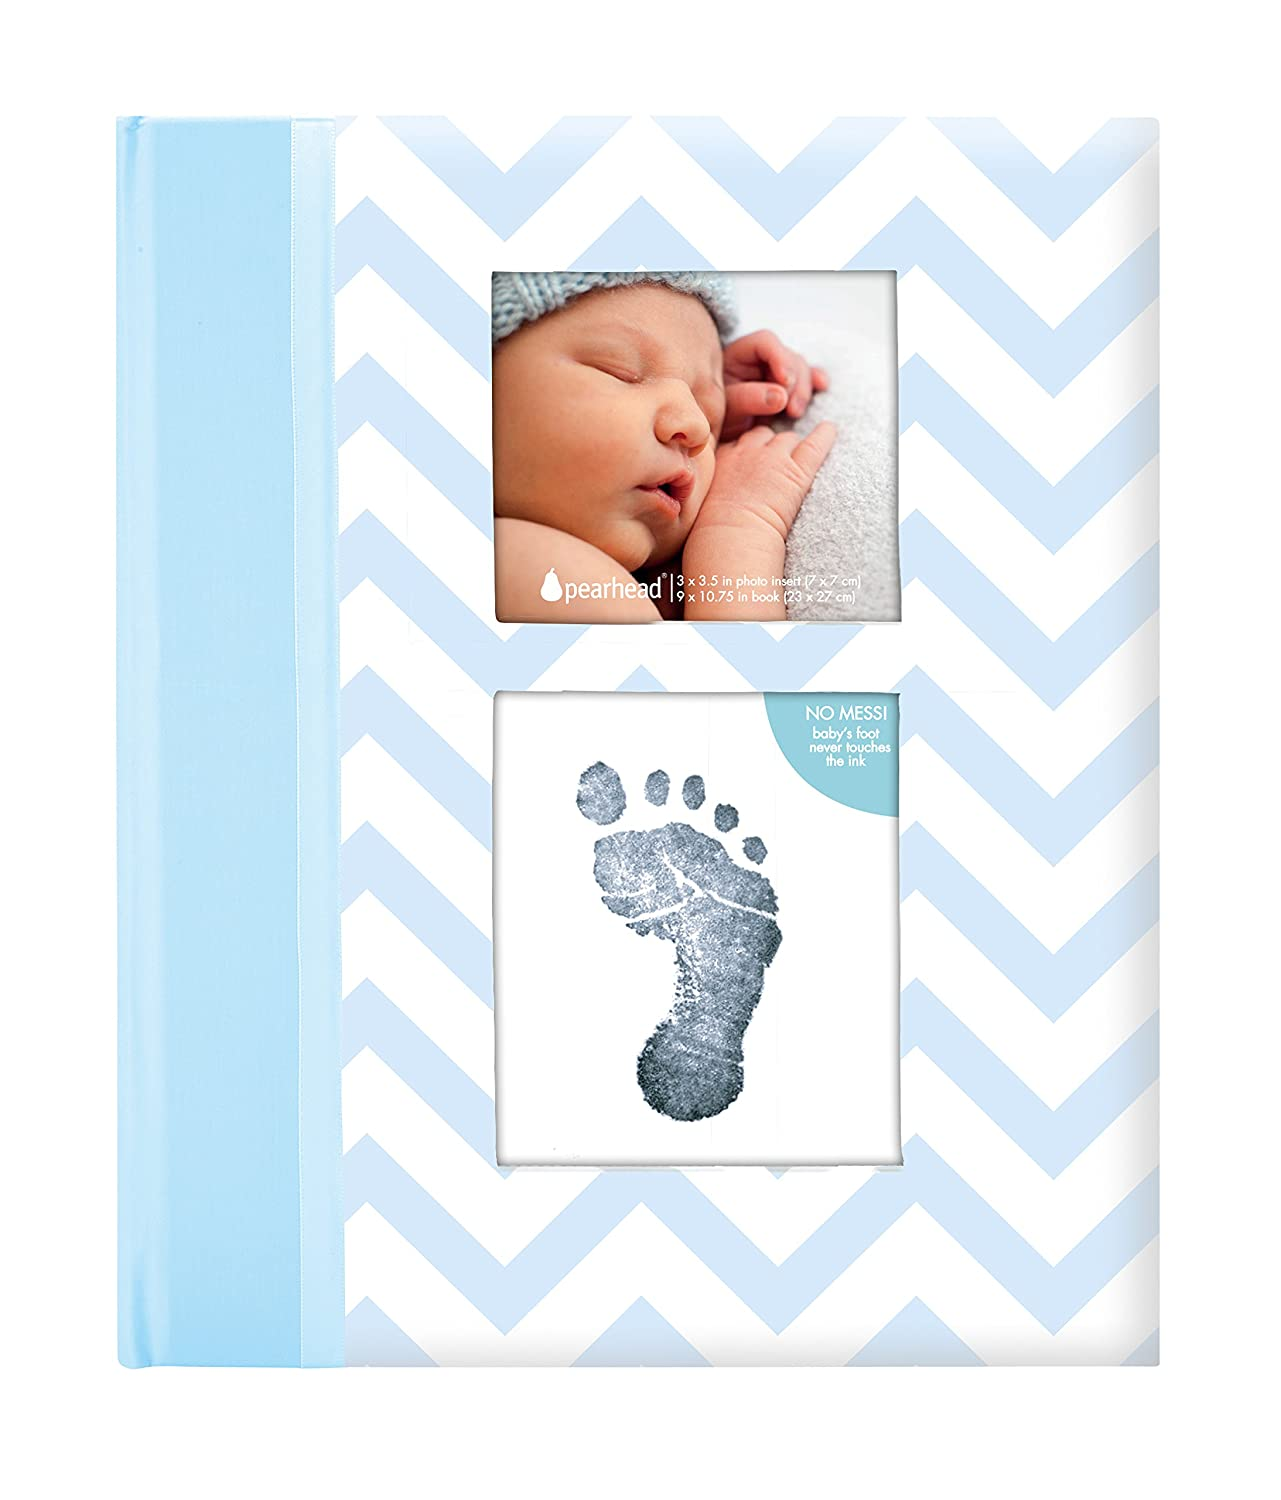 Pearhead Chevron Baby Memory Book with Clean Touch Ink Pad to Create Handprint or Footprint, German Version, Blue Pearhead Inc P62204